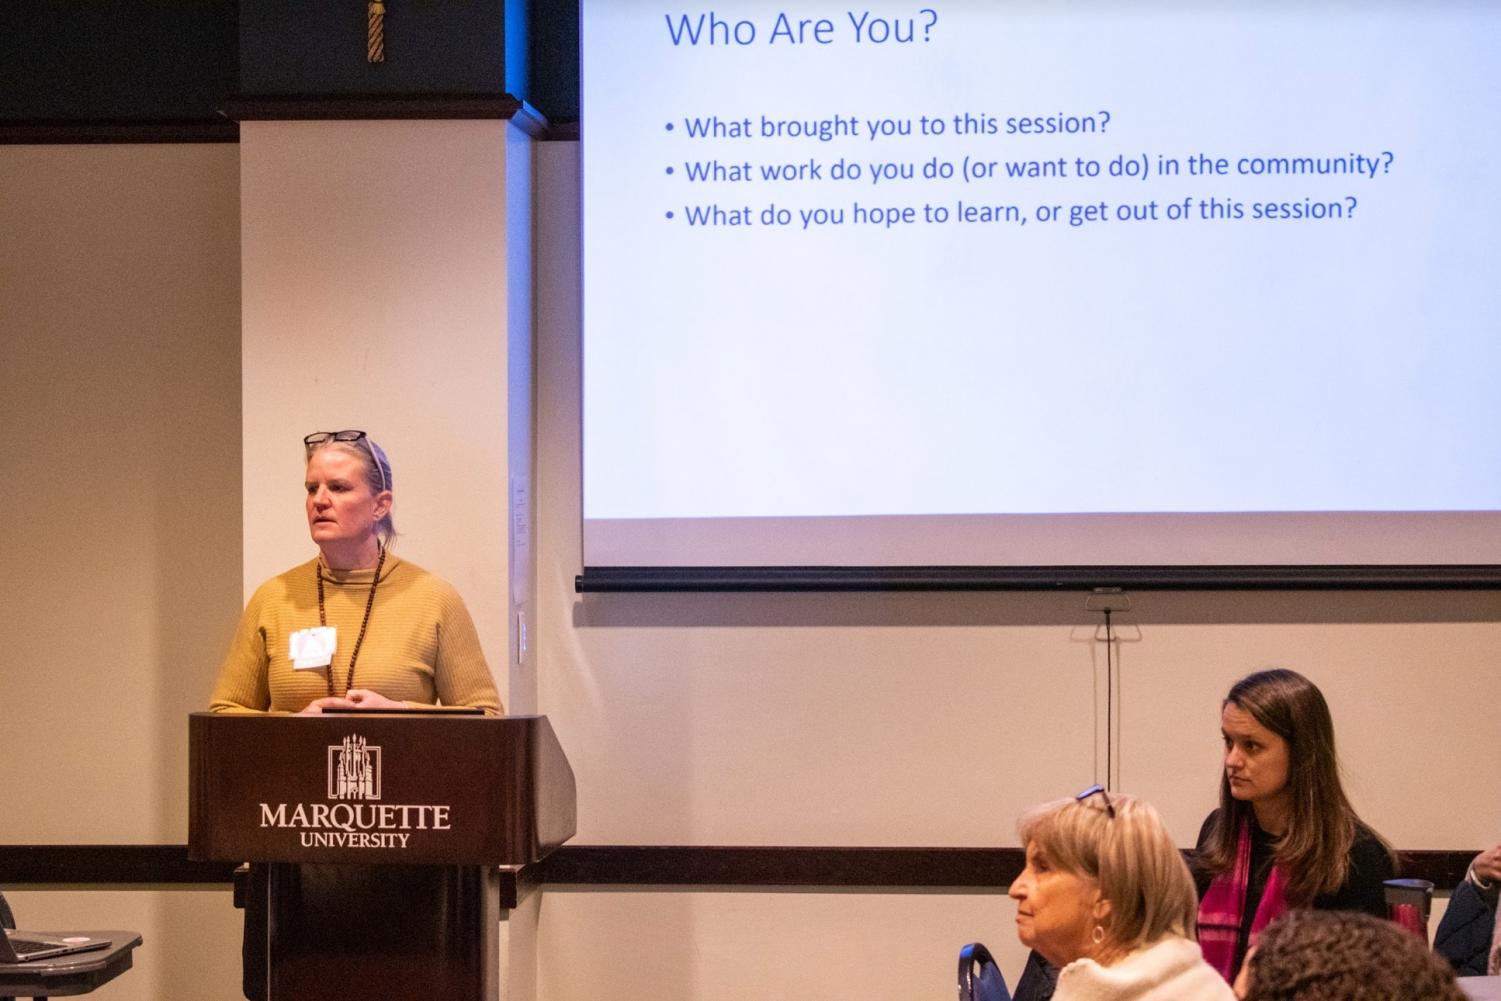 "The event focused on gathering around the ""Six Pathways to Public Engagement"" that were identified by the Haas Center for Public Service at Stanford University, according Marquette's website."